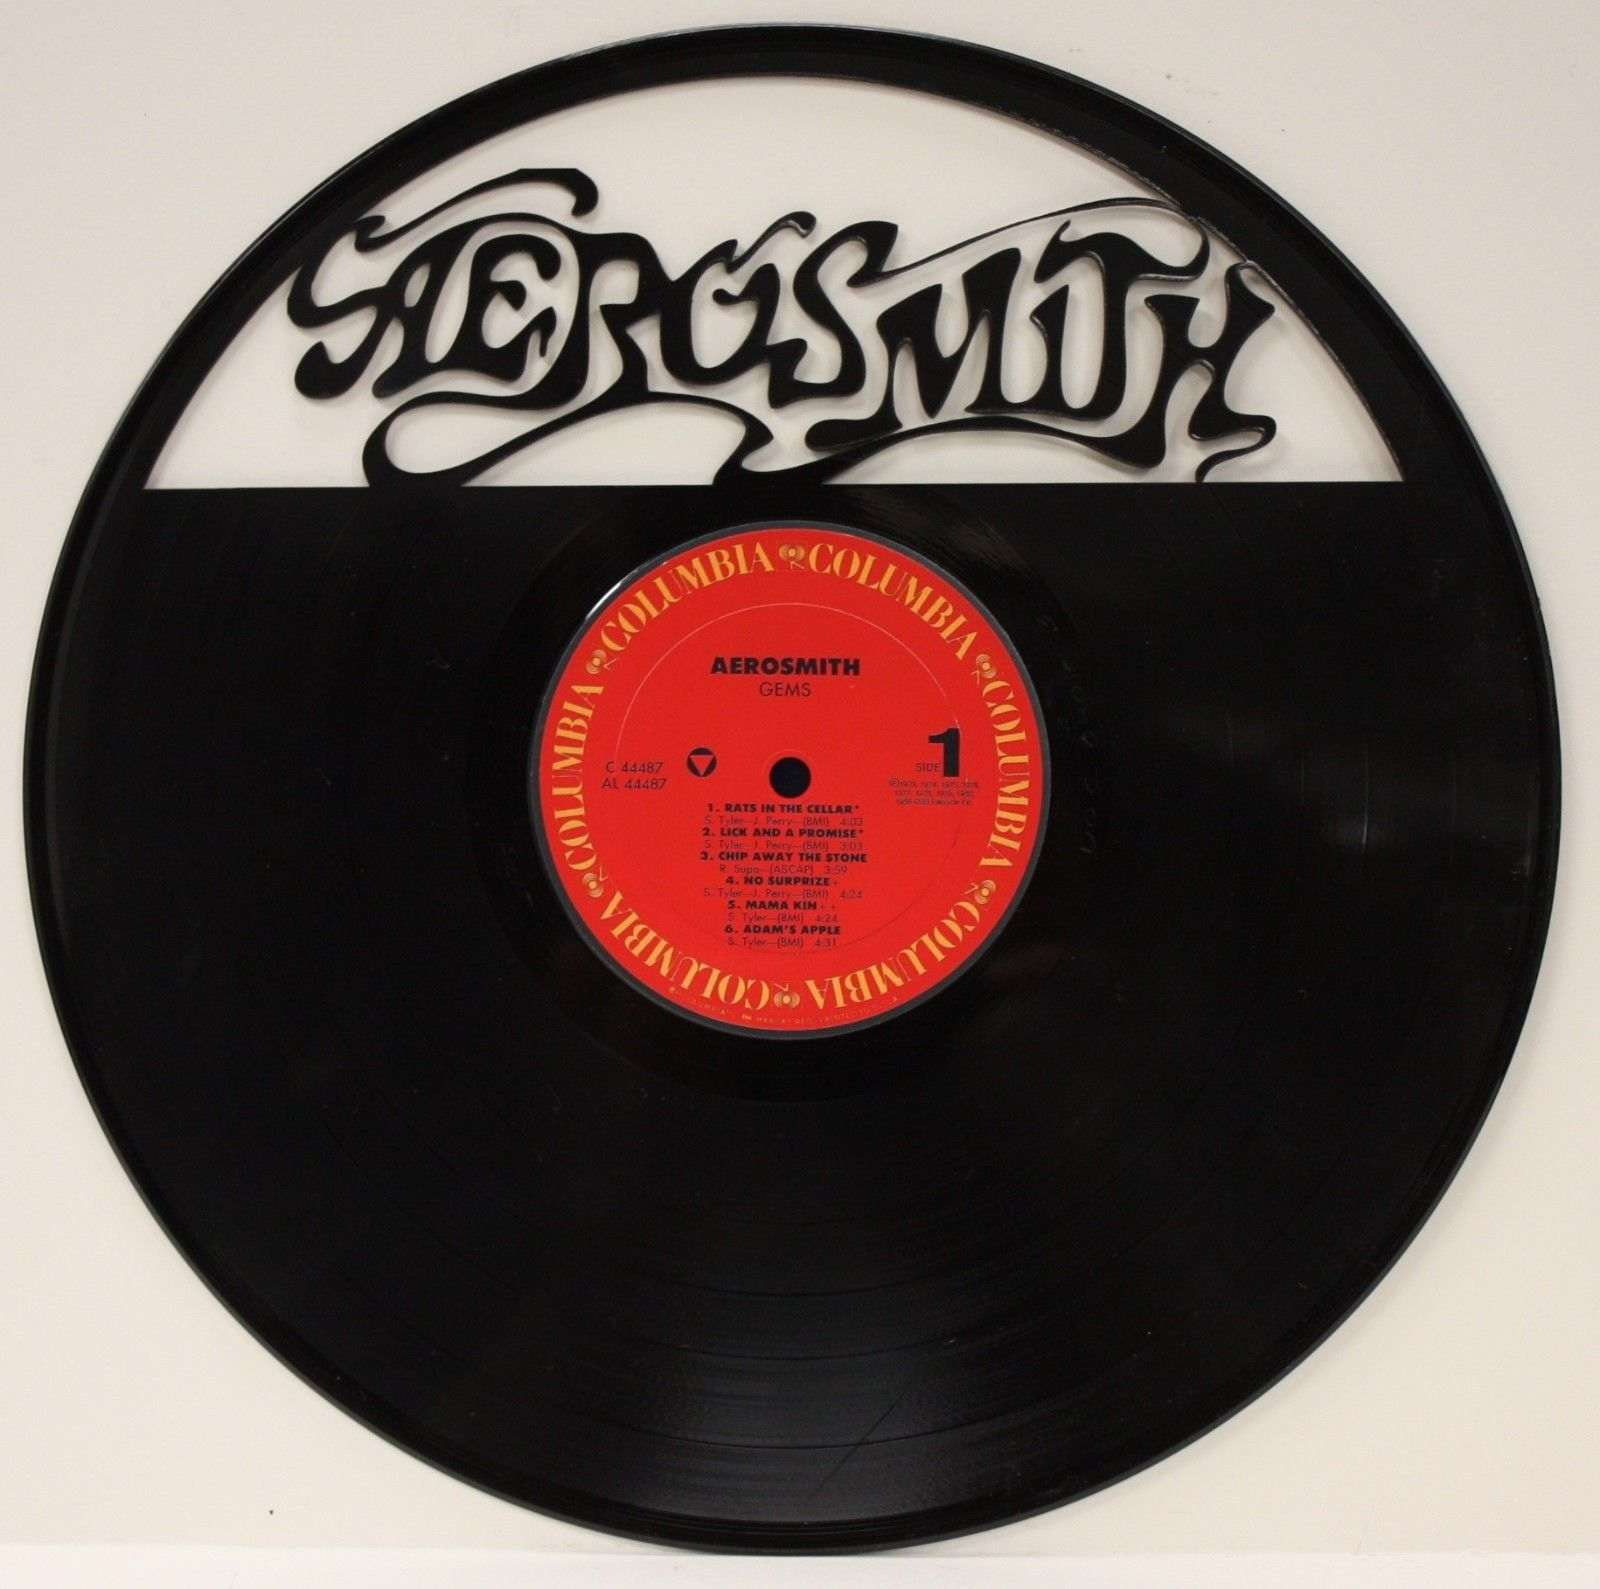 "AEROSMITH VINYL 12"" LP RECORD LASER CUT WALL ART DISPLAY ..."